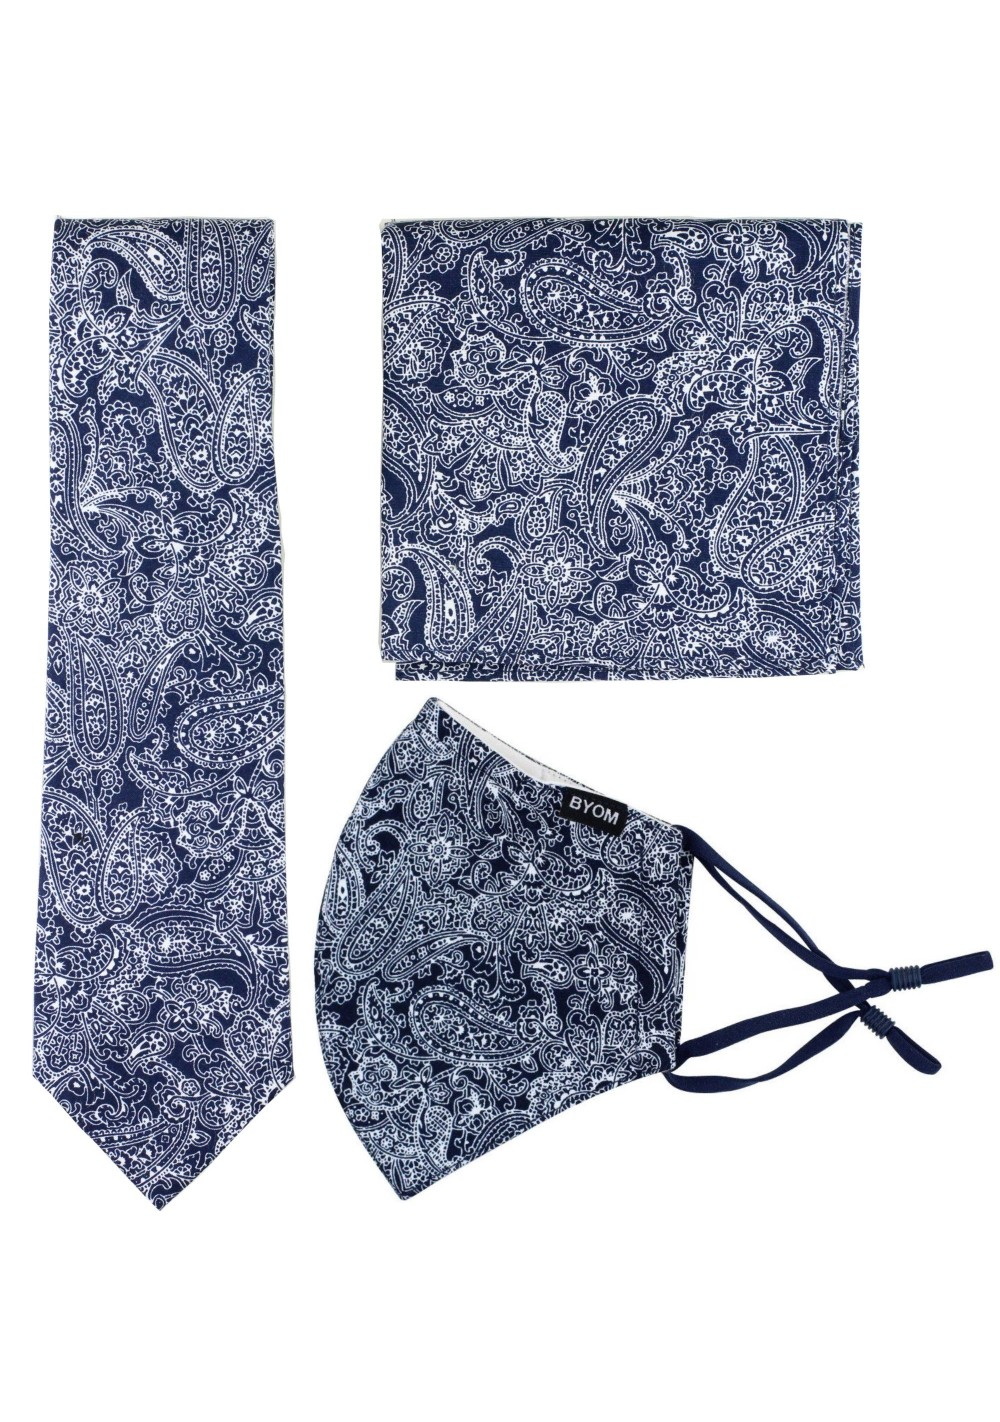 Skinny Tie and Face Mask in Navy with Bandana Print